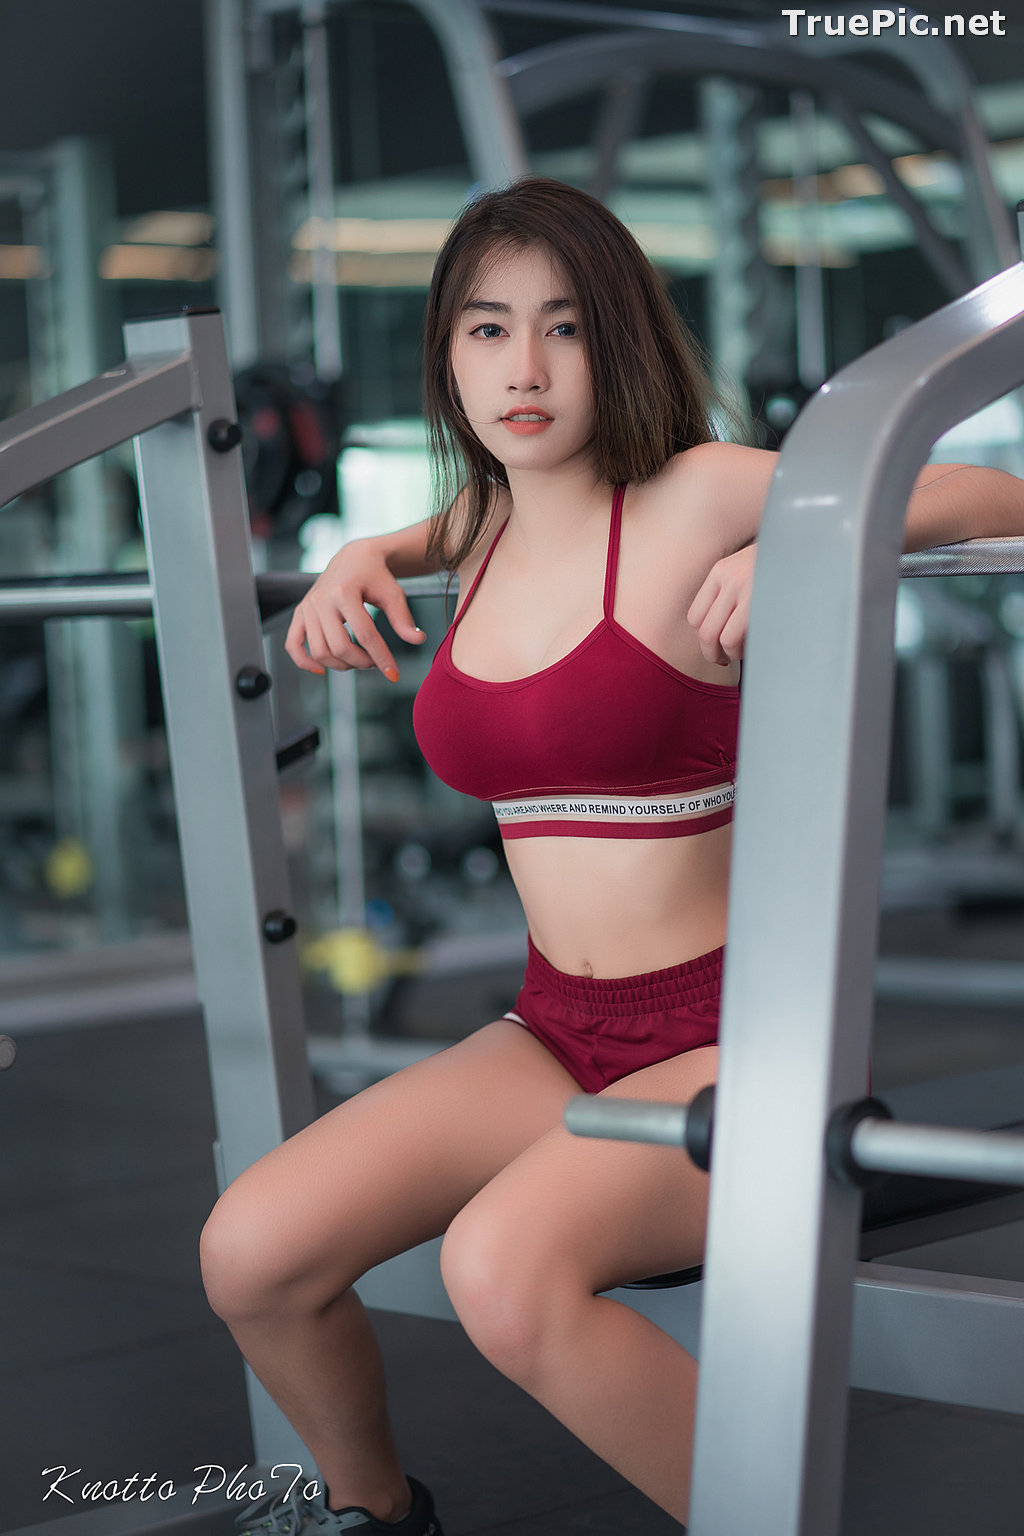 Image Thailand Hot Beauty Model - Nisa Khamarat - Red and Black Fitness Set - TruePic.net - Picture-10